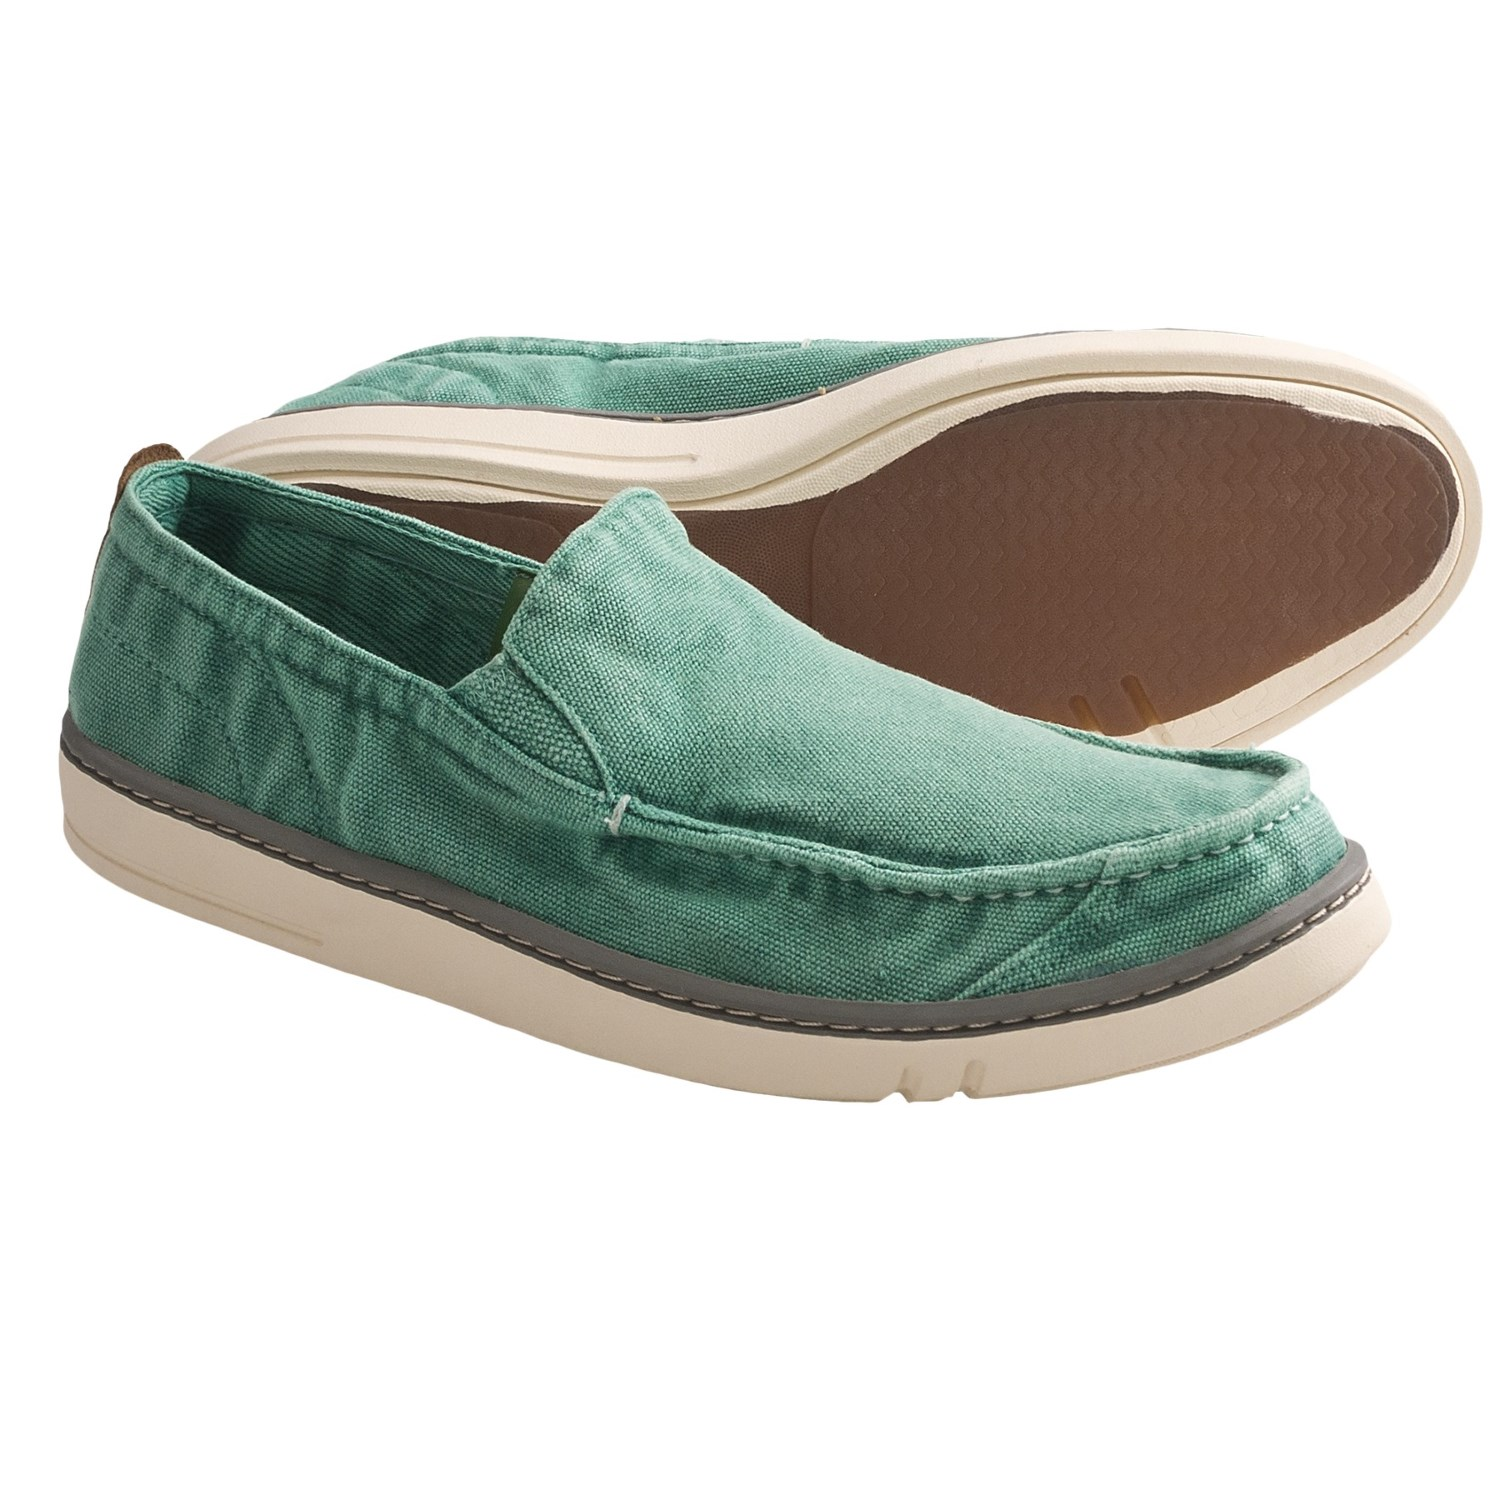 timberland earthkeepers shoes canvas slip ons for